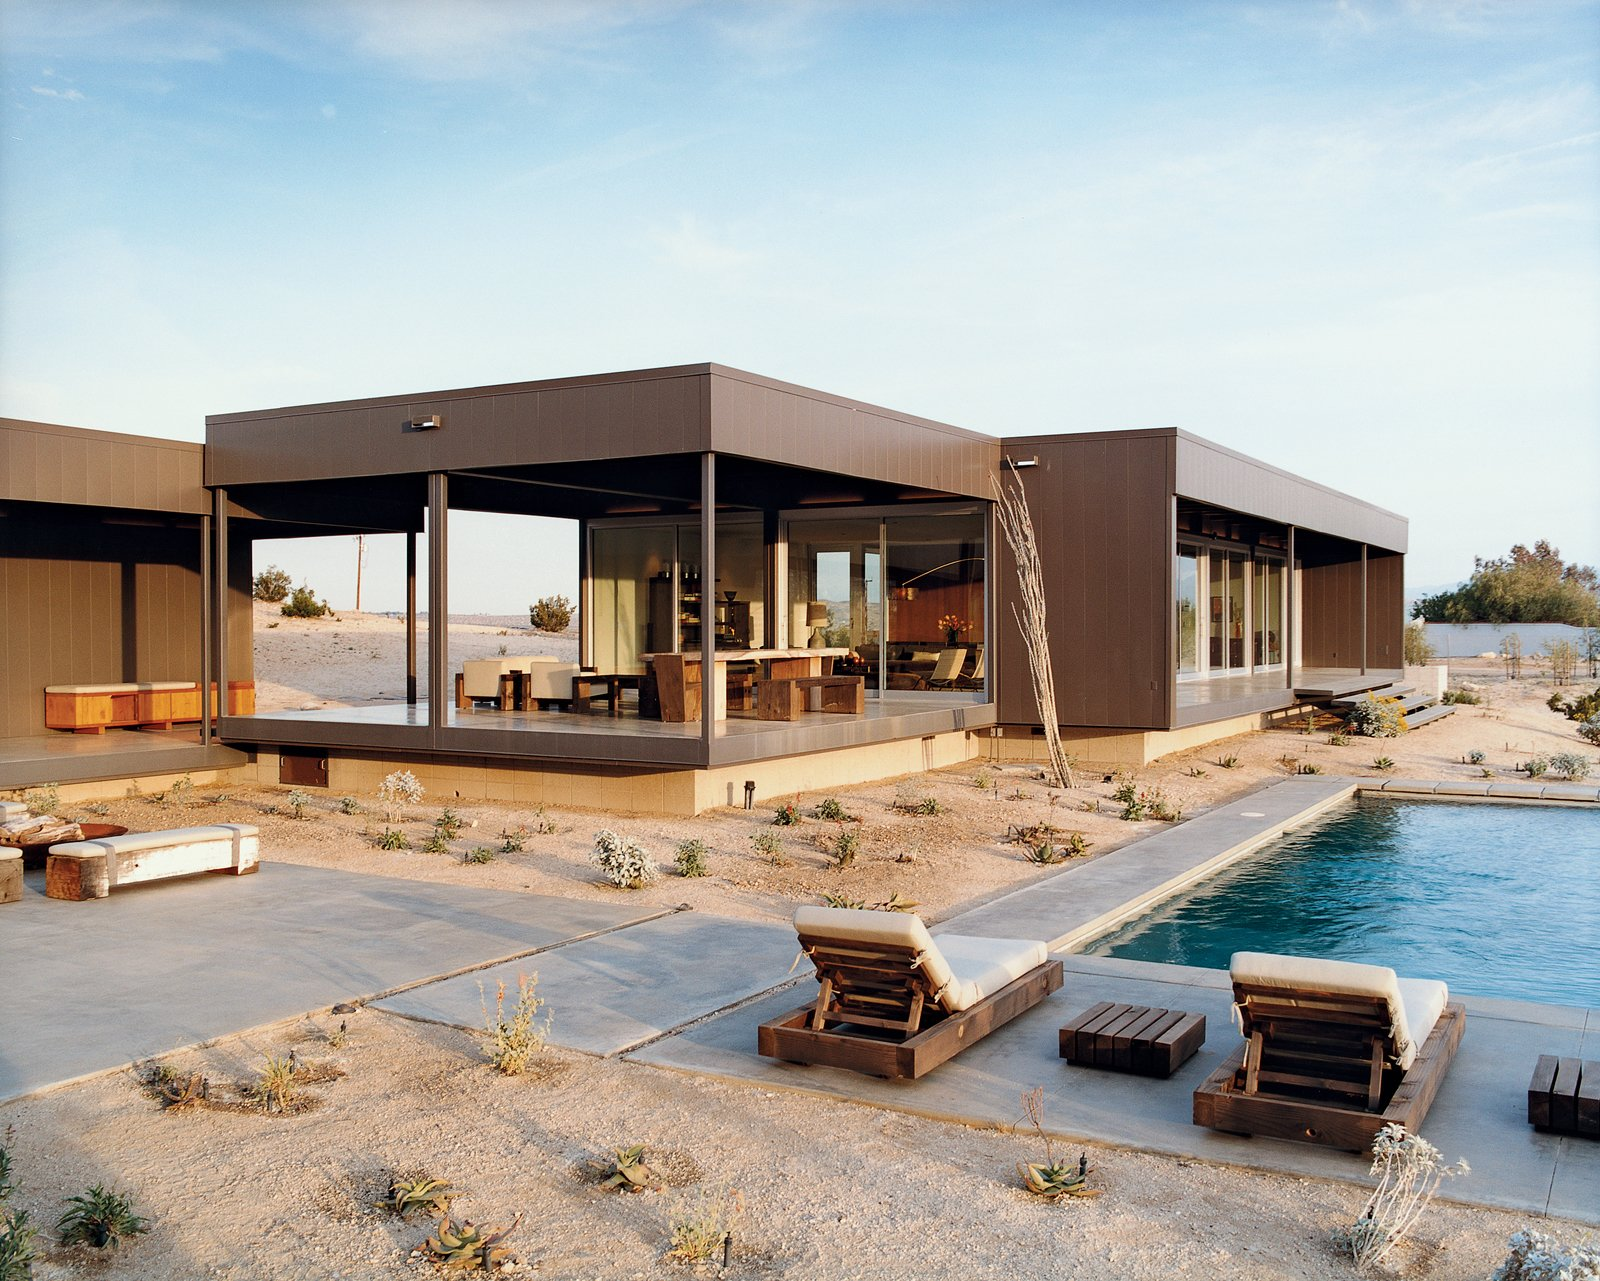 These 7 Homes in the Southwest Show How to Design For the Desert